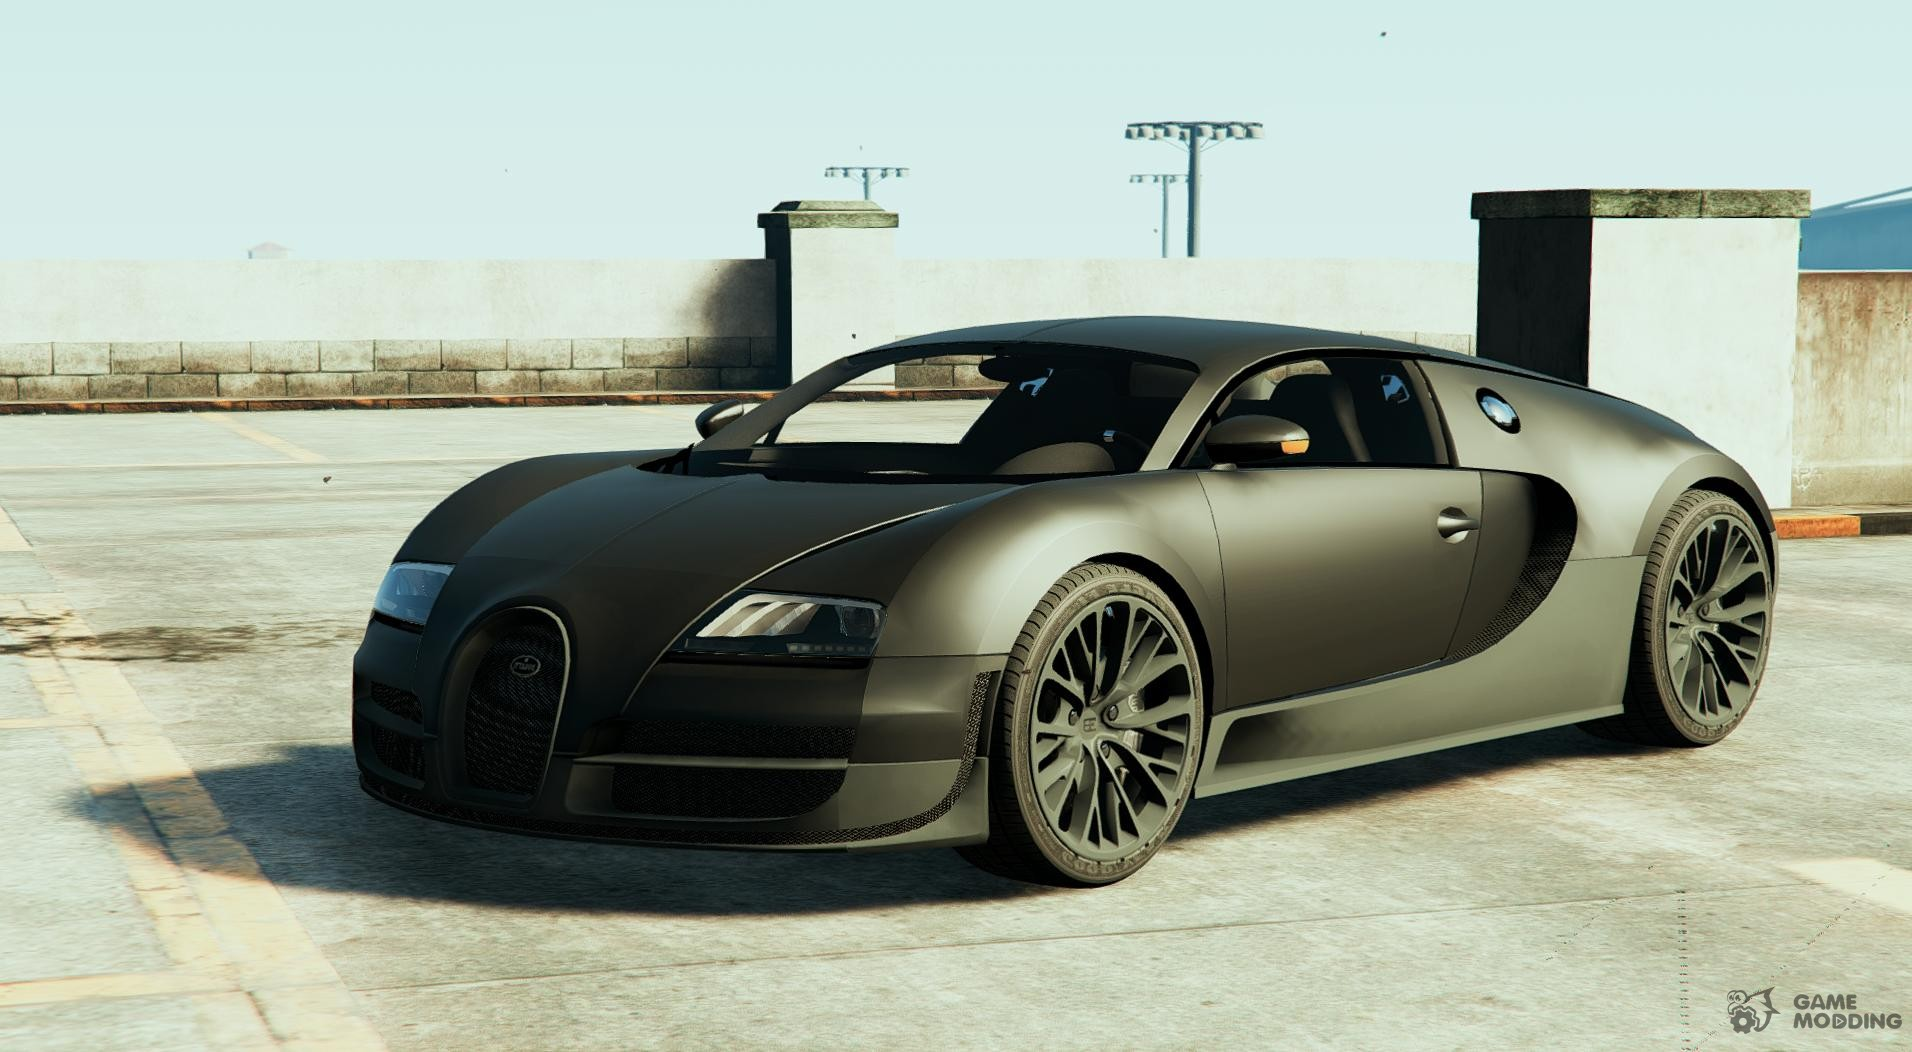 terrific bugatti veyron gta 5 location on map noisiestpassenger. Black Bedroom Furniture Sets. Home Design Ideas